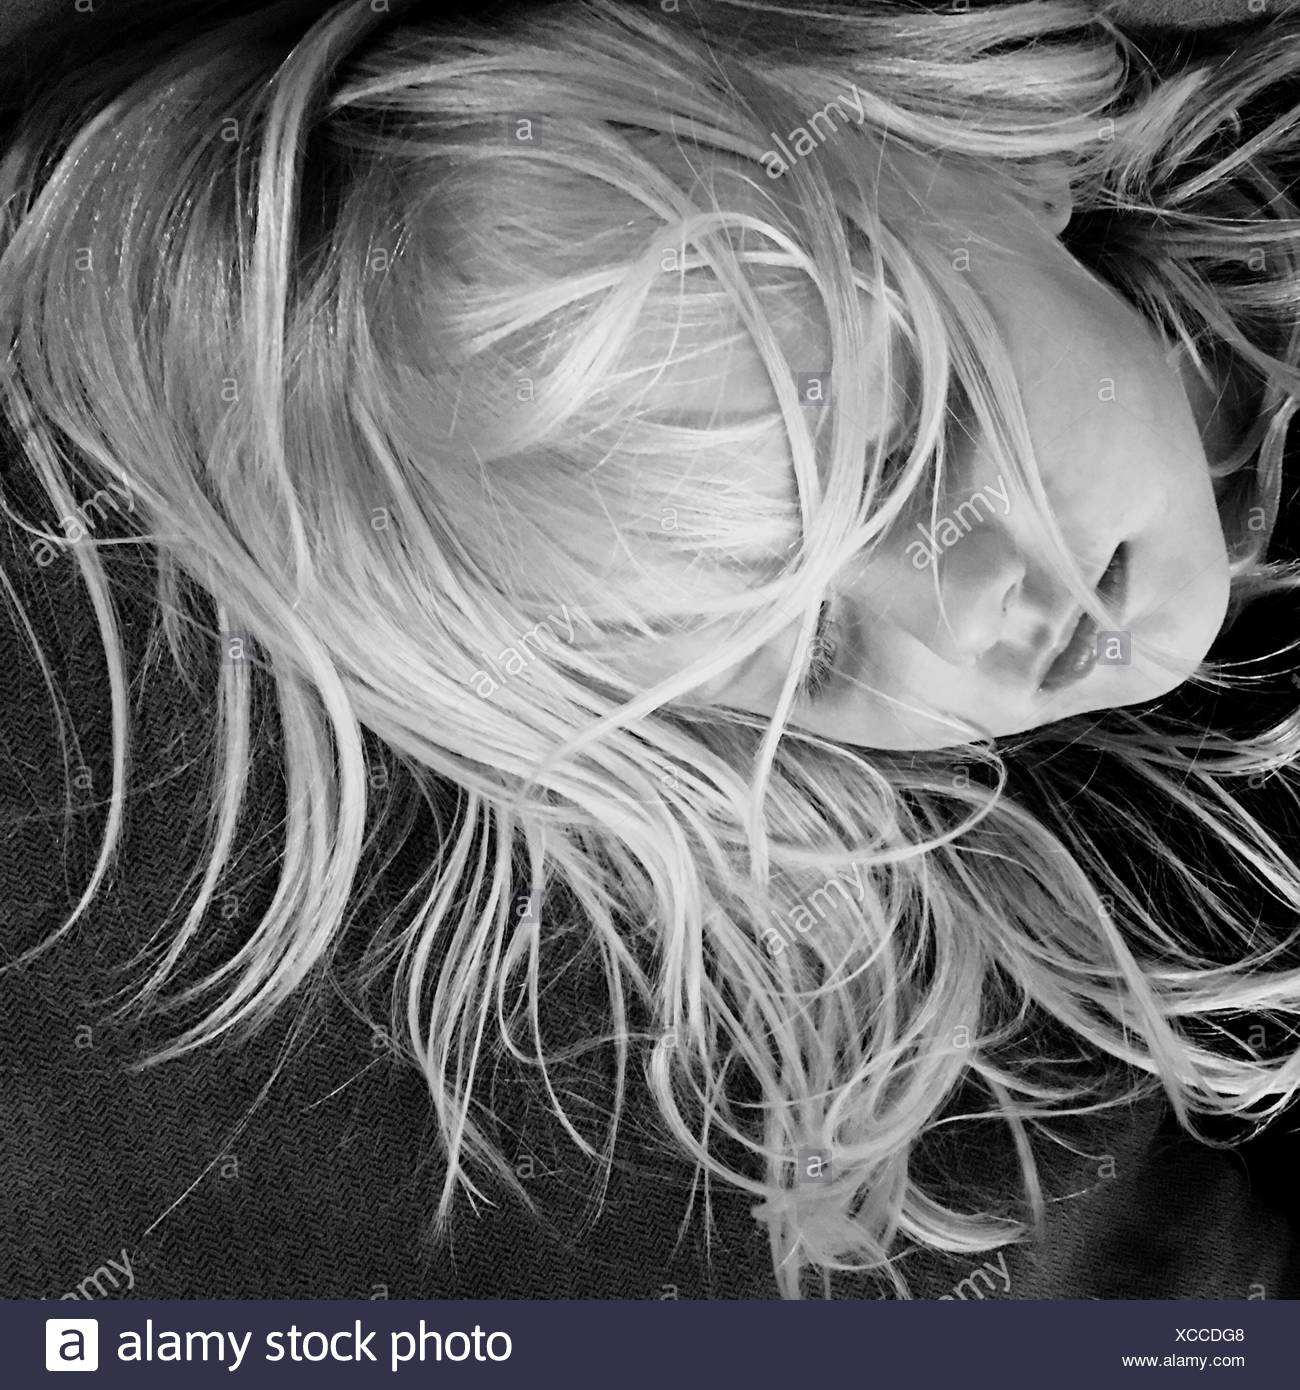 High Angle View Of Girl With Messy Hair Sleeping On Bed - Stock Image